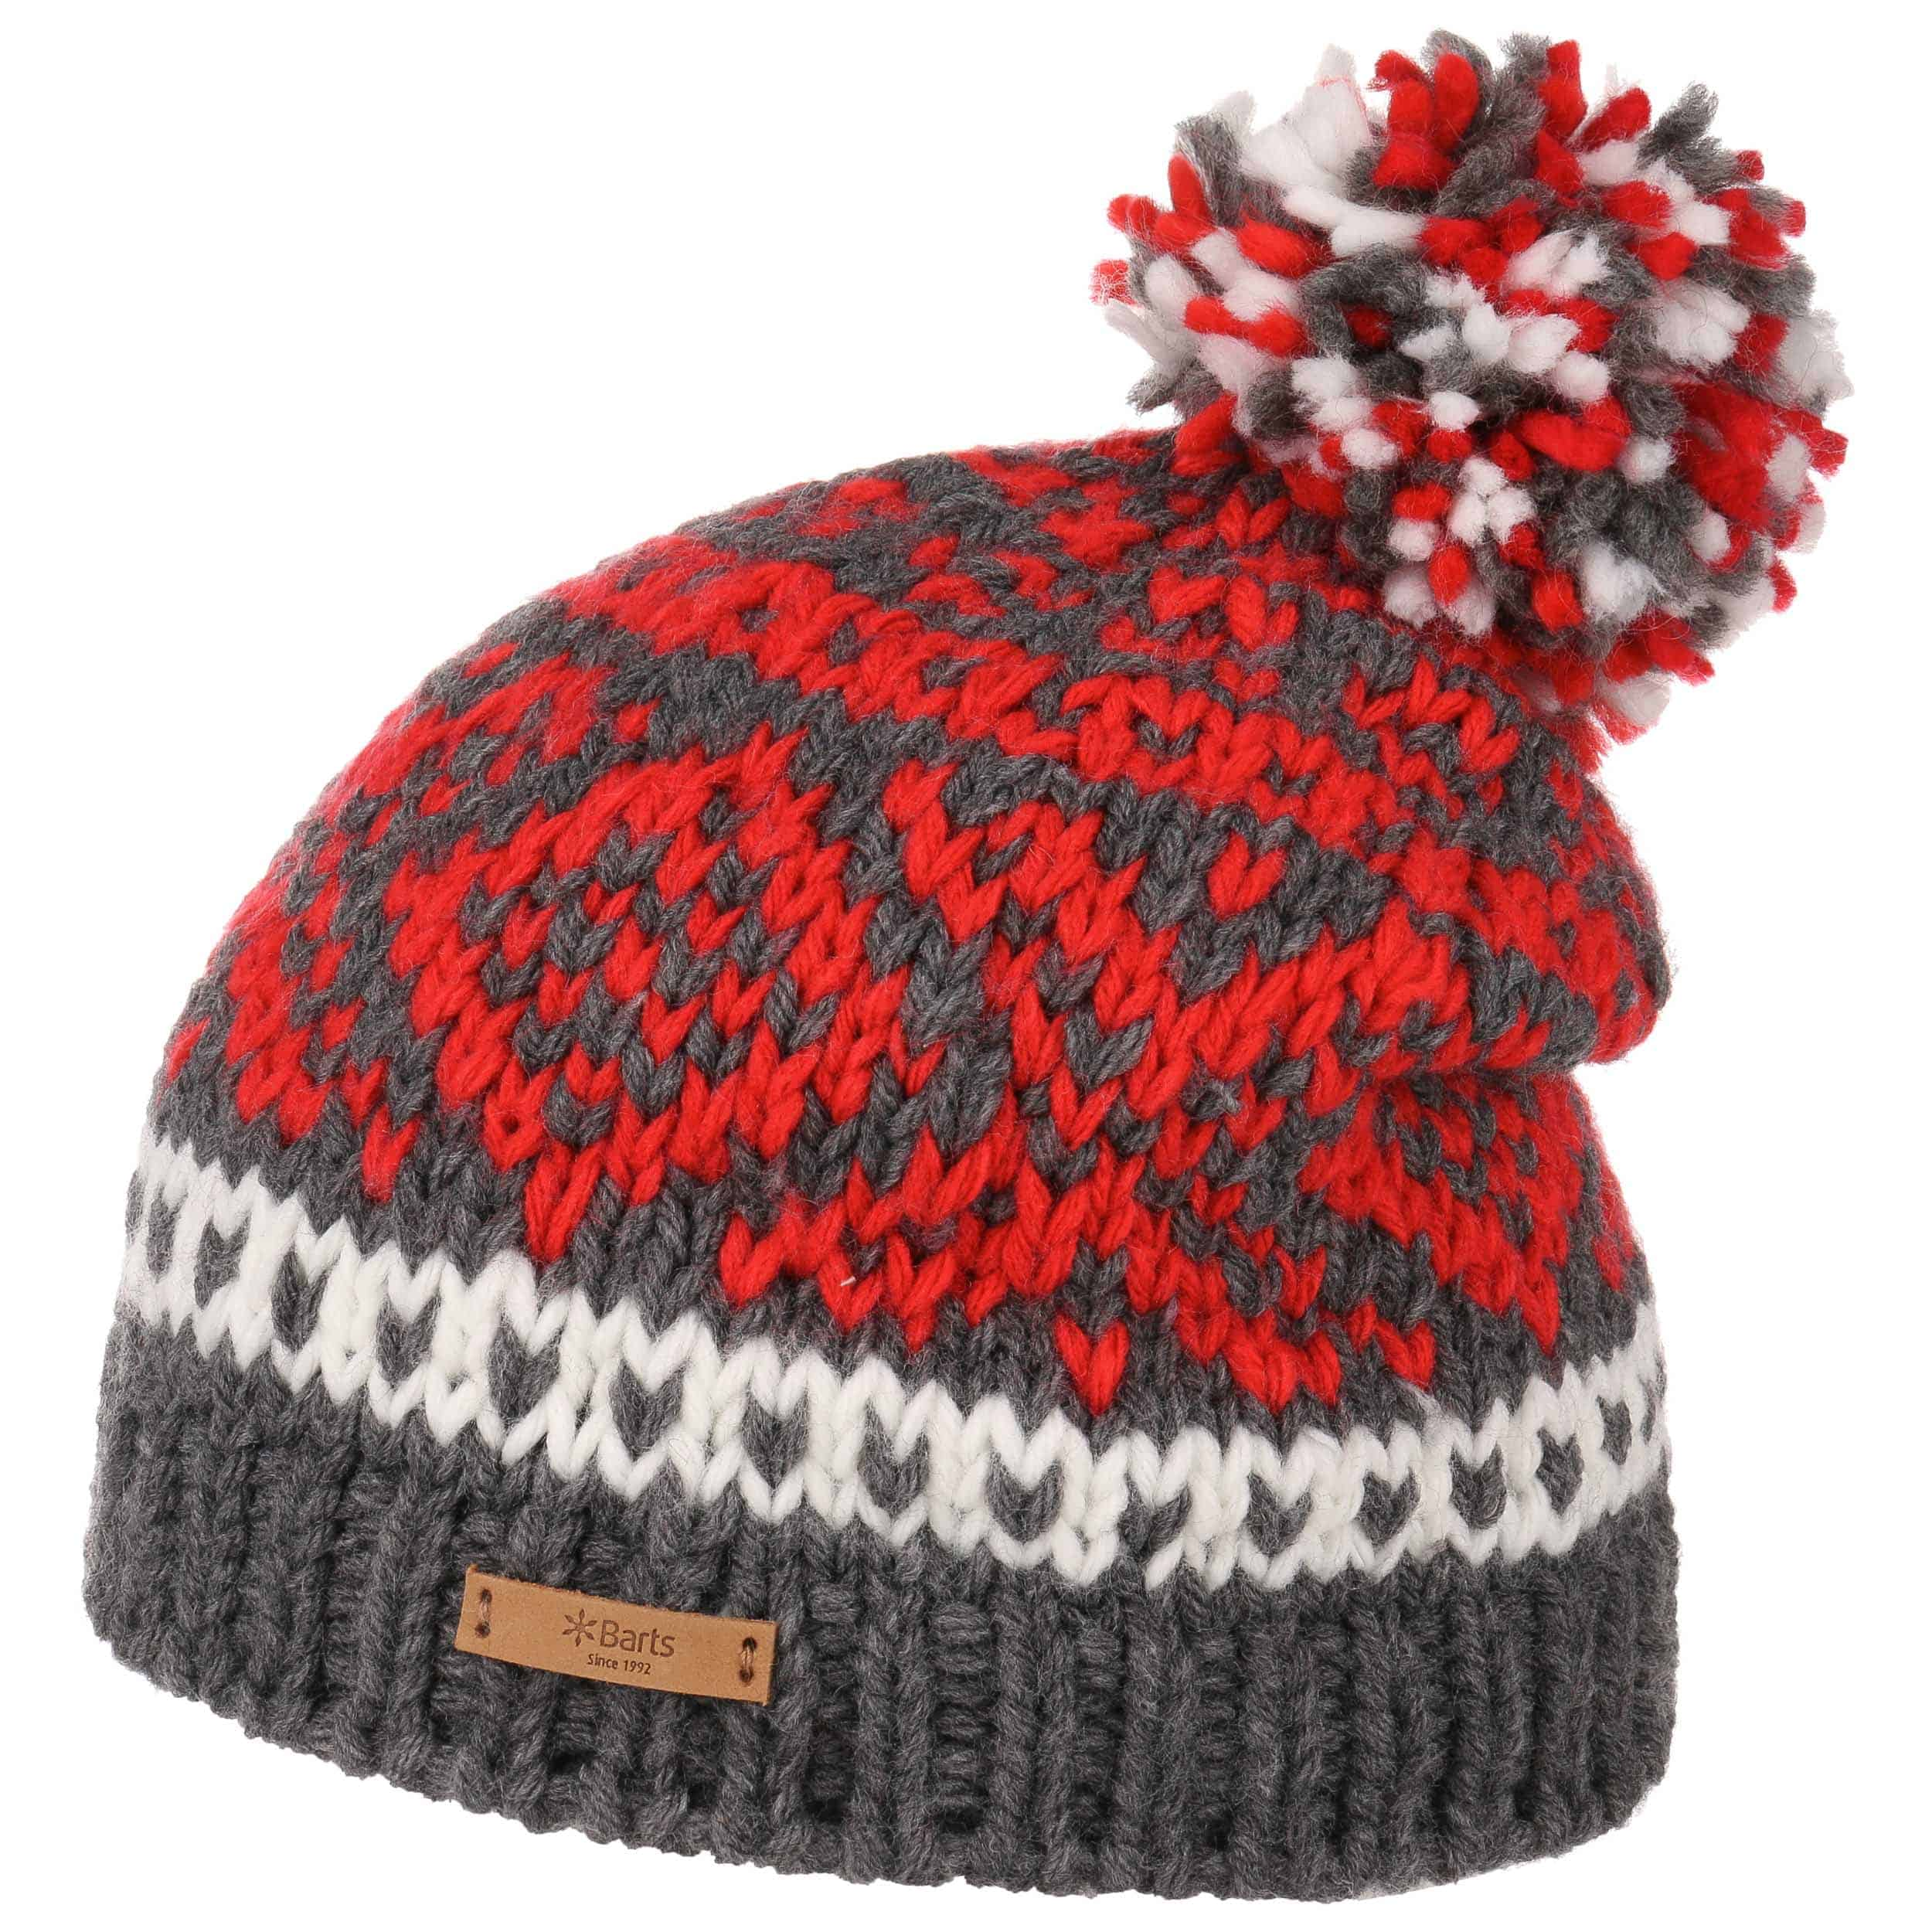 c36ab3a4bc1079 ... light grey 3 · Log Cabin Pompom Hat by Barts - red 3 ...